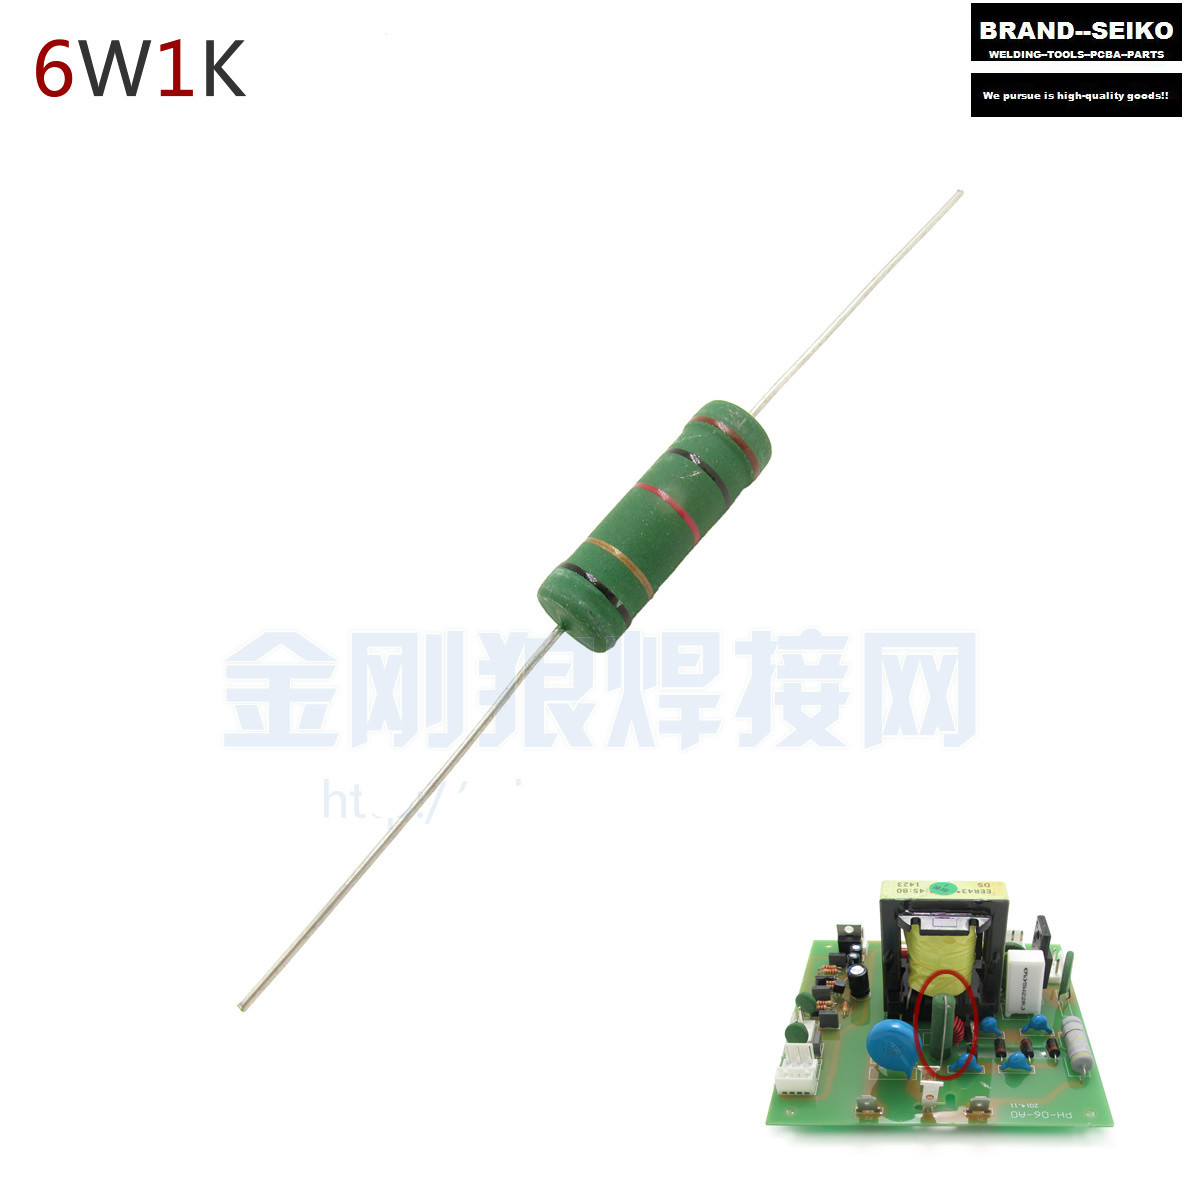 10PCS/LOT 6w1 K 5% Winding Resistance Welding Inverter Used High-pressure Plate Resistor Instead Of Carbon Film Life Better 10pcs lab industrial 5 6mm to18 80mw 100mw 650nm 660nm red laser diode ld w pd